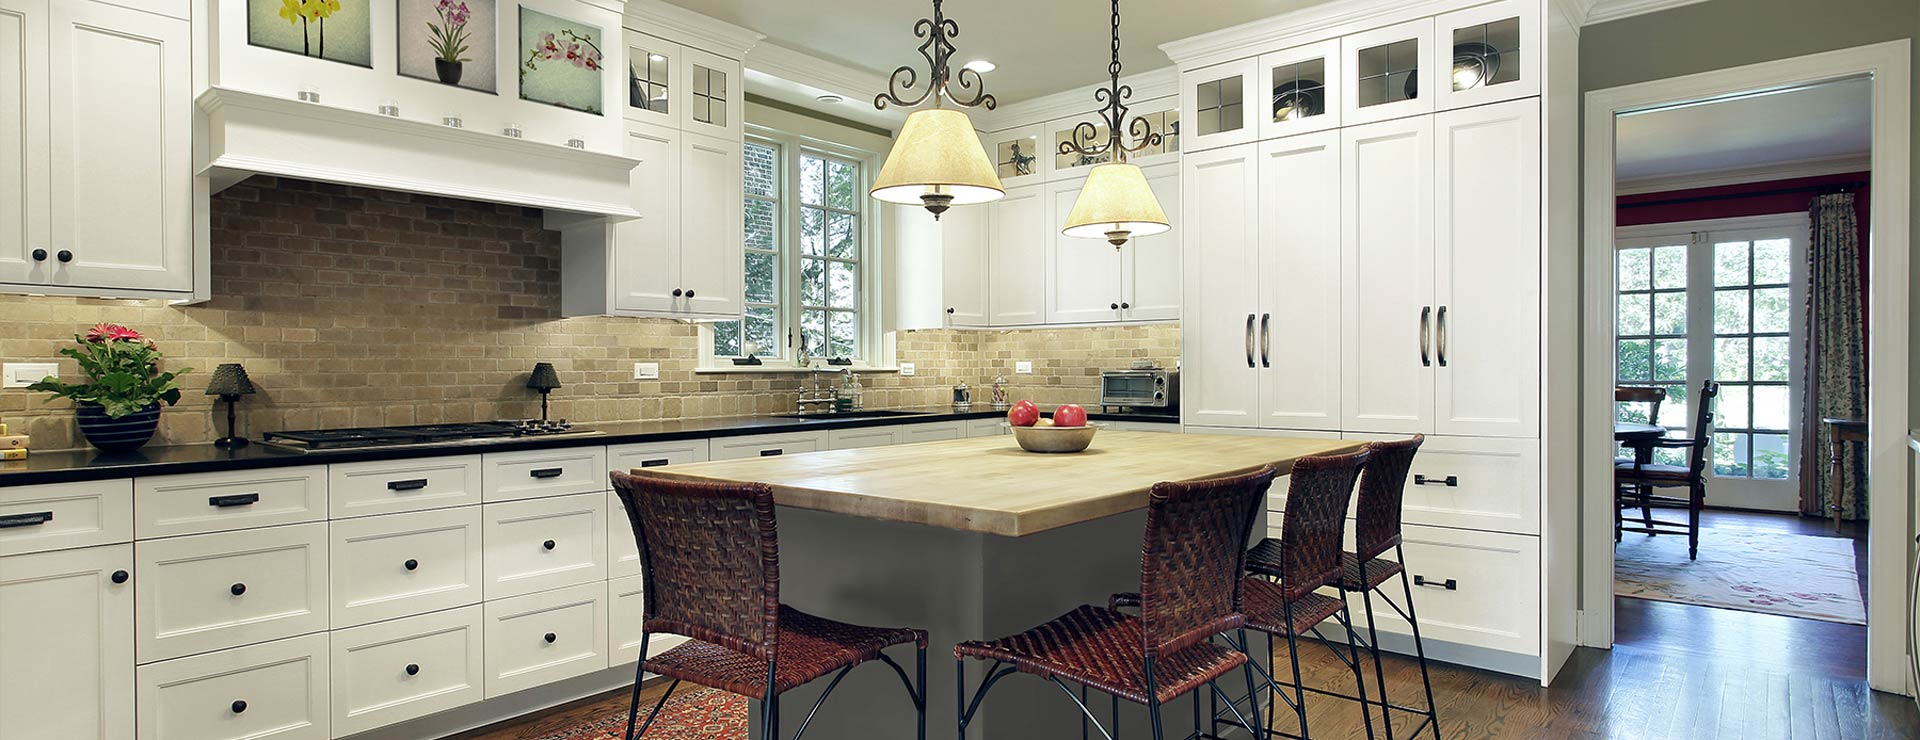 charlotte kitchen cabinets mats amazon premium remodeling in nc